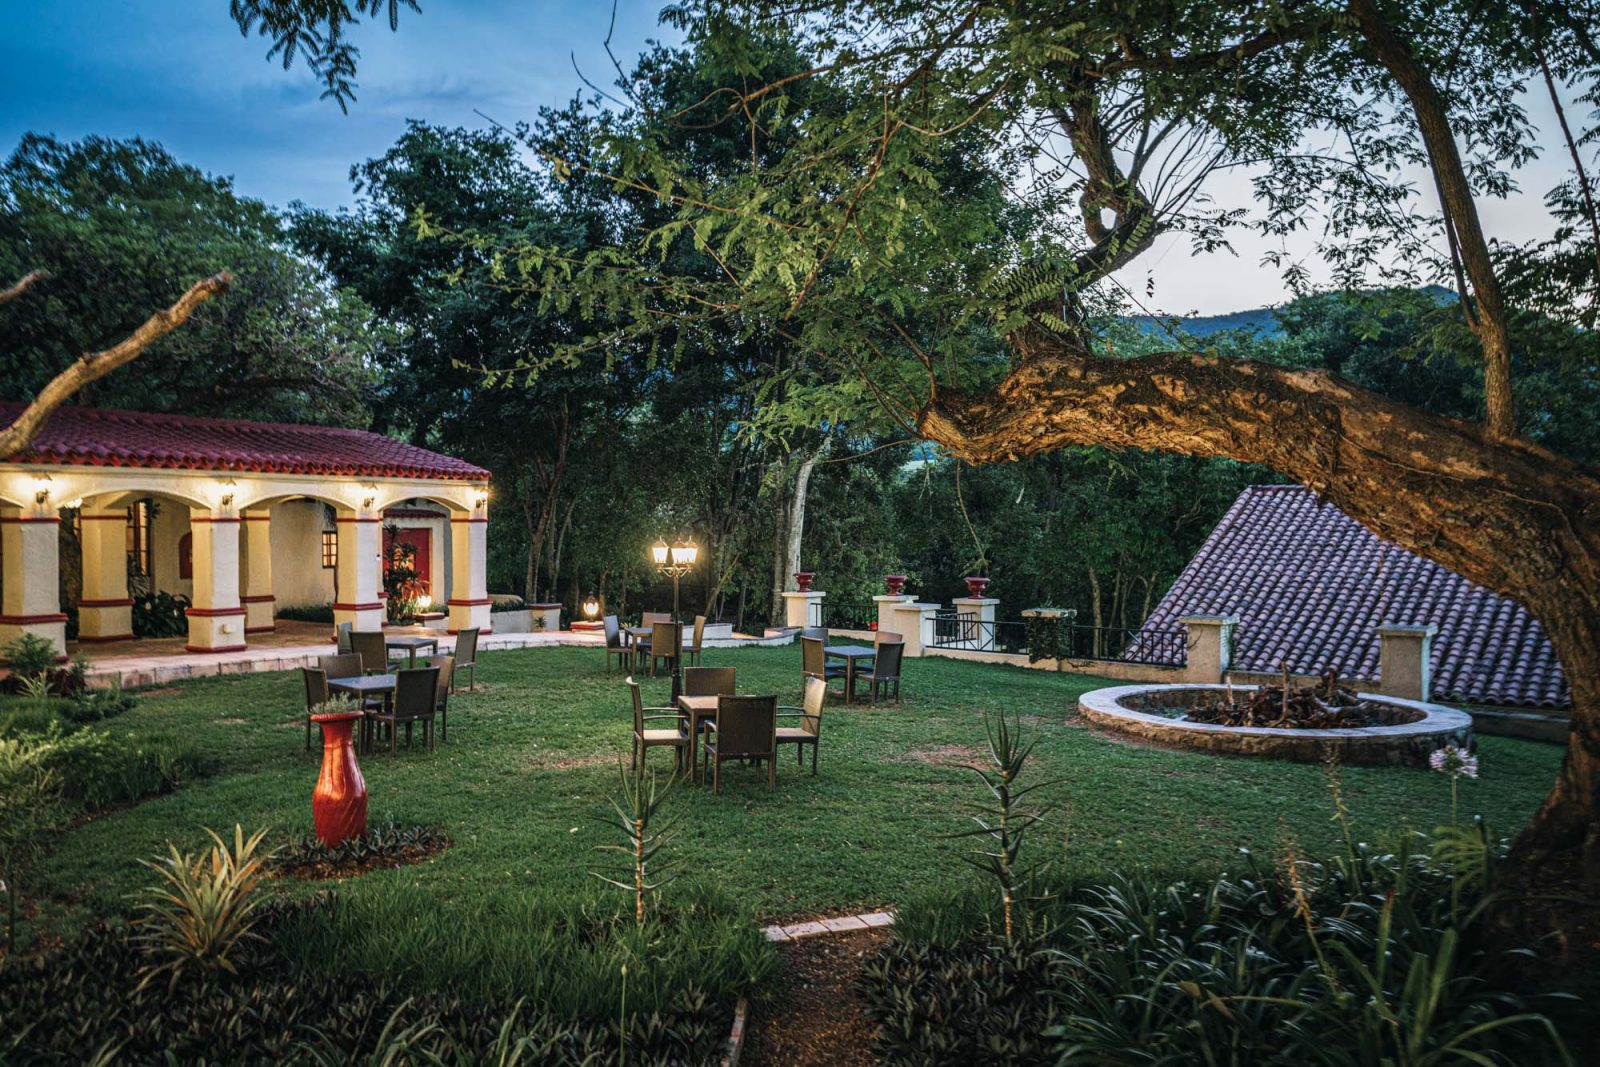 aha Casa o Sol hotel, Hazyview, Greater Kruger Area